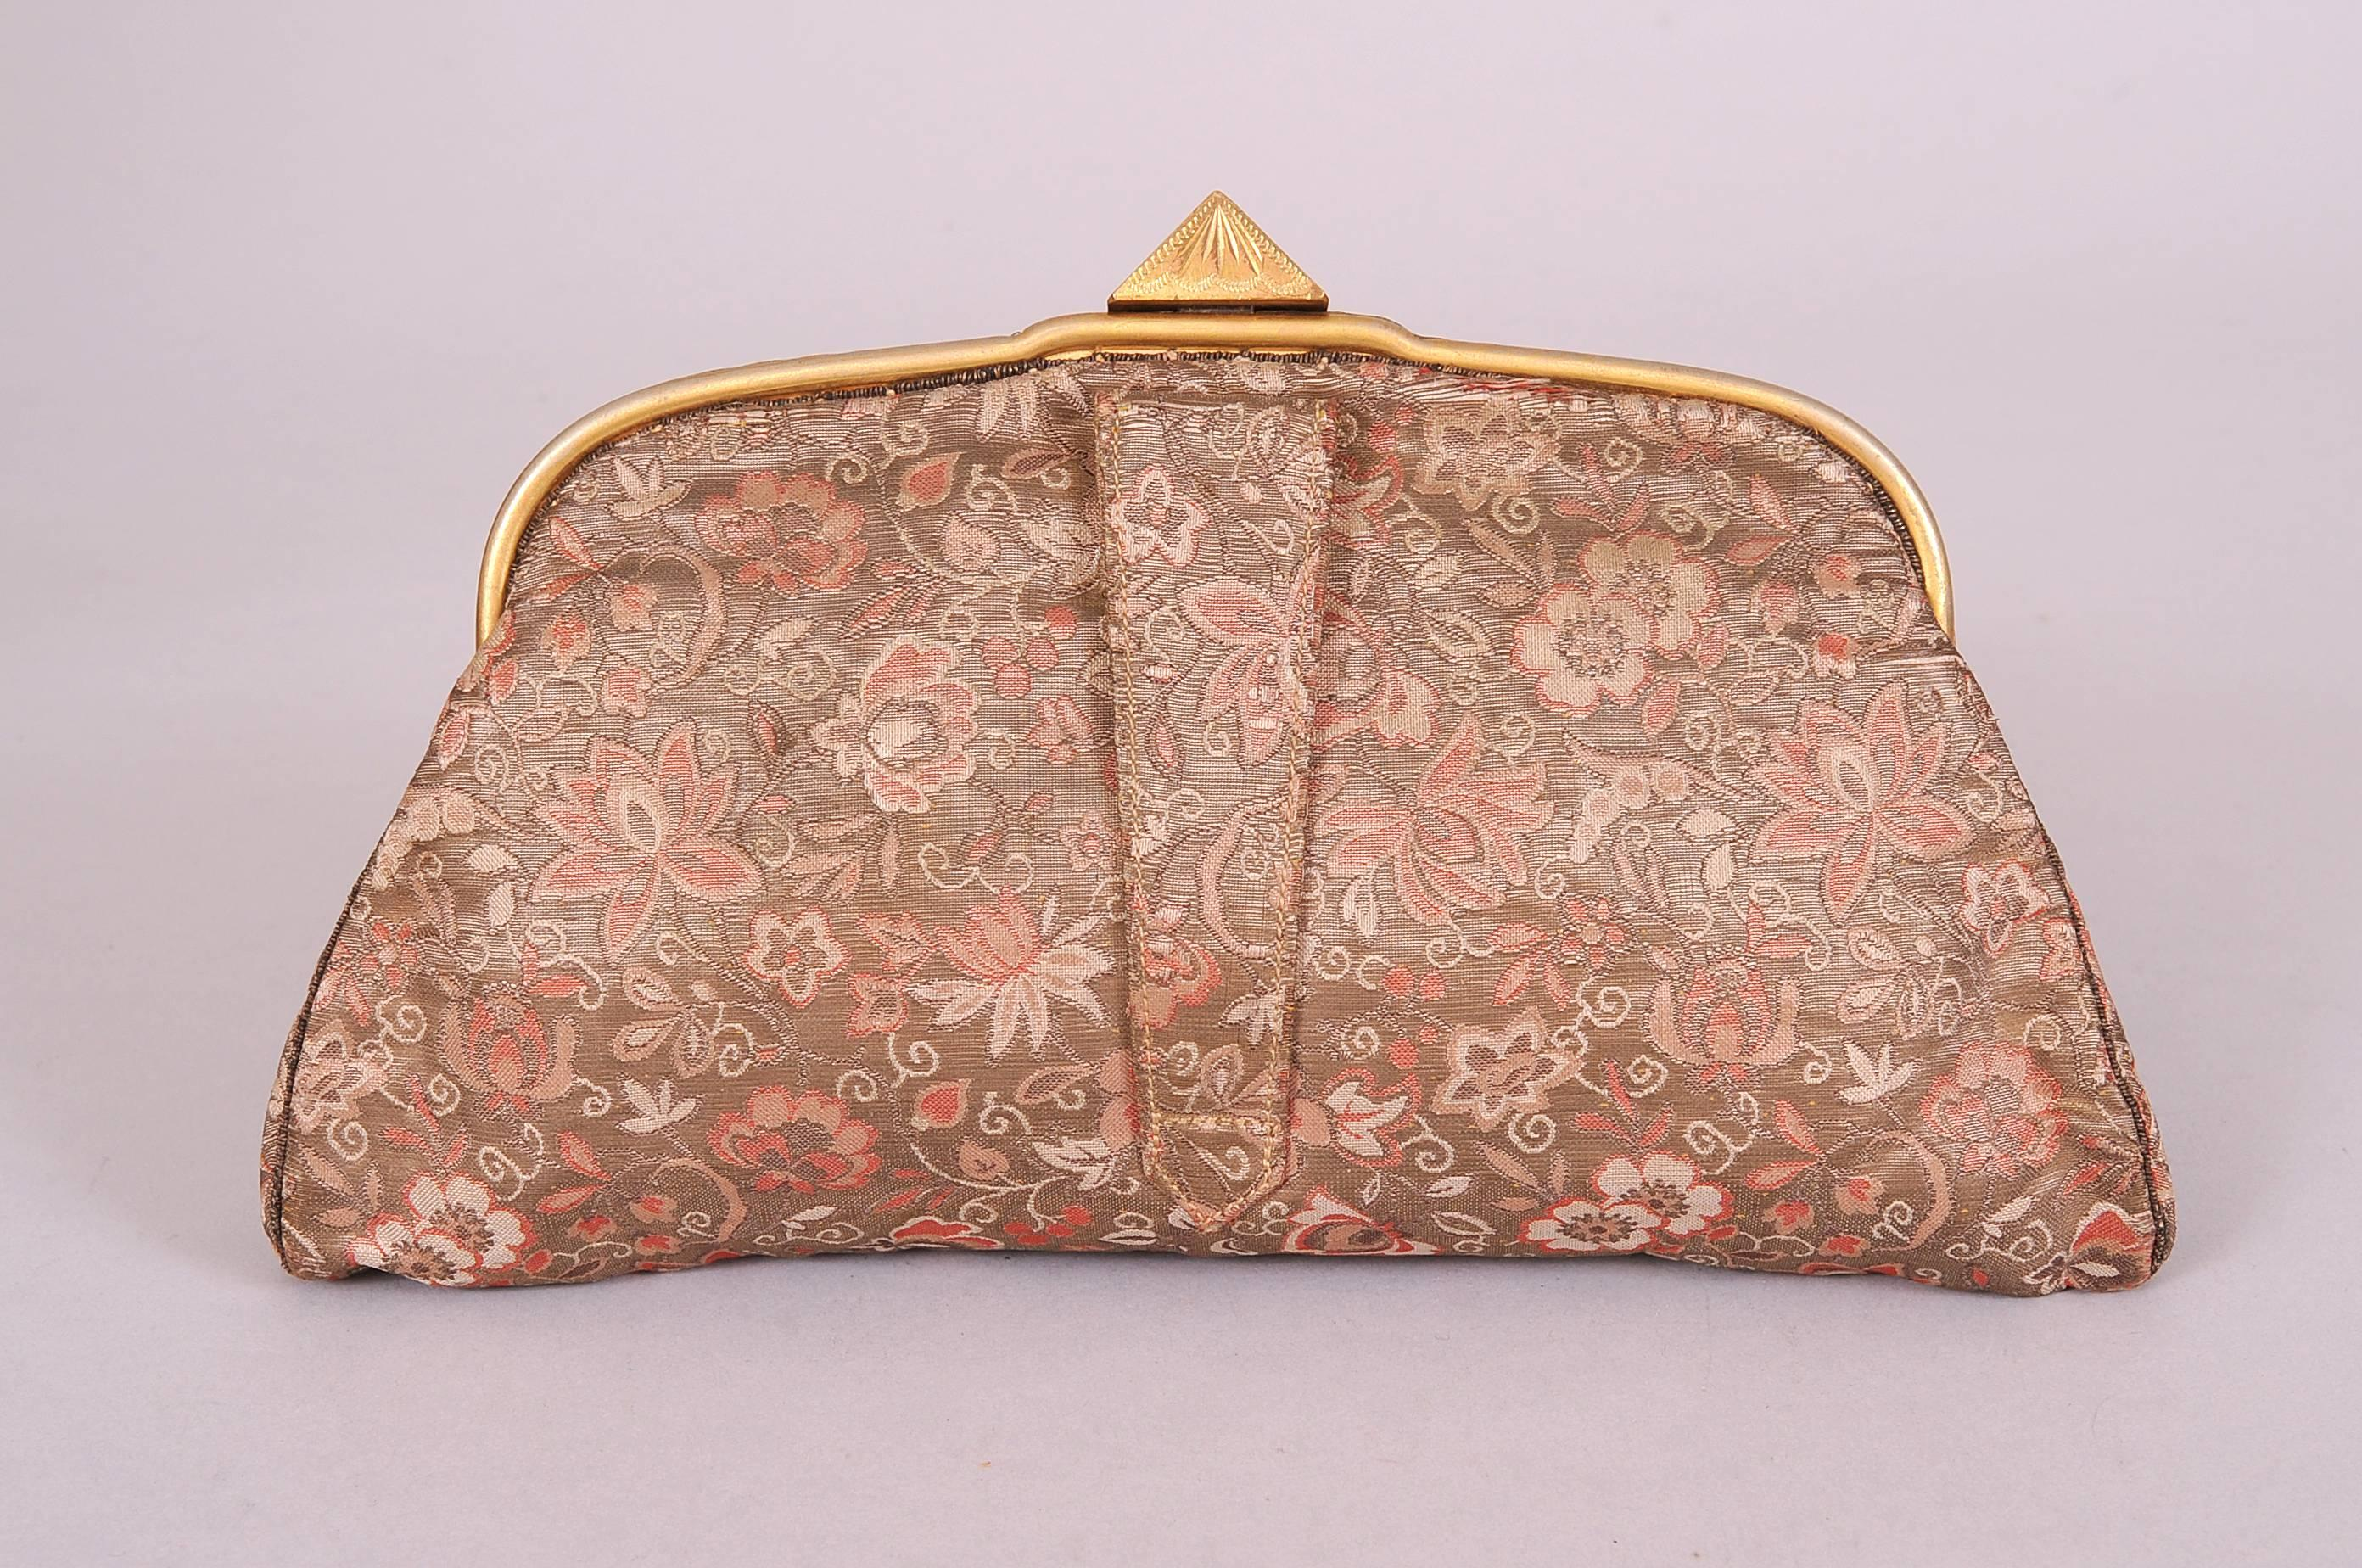 b7204420c32c4 20th Century Bag from 18th Century Russian Imperial Brocade A La Vieille  Russie For Sale at 1stdibs